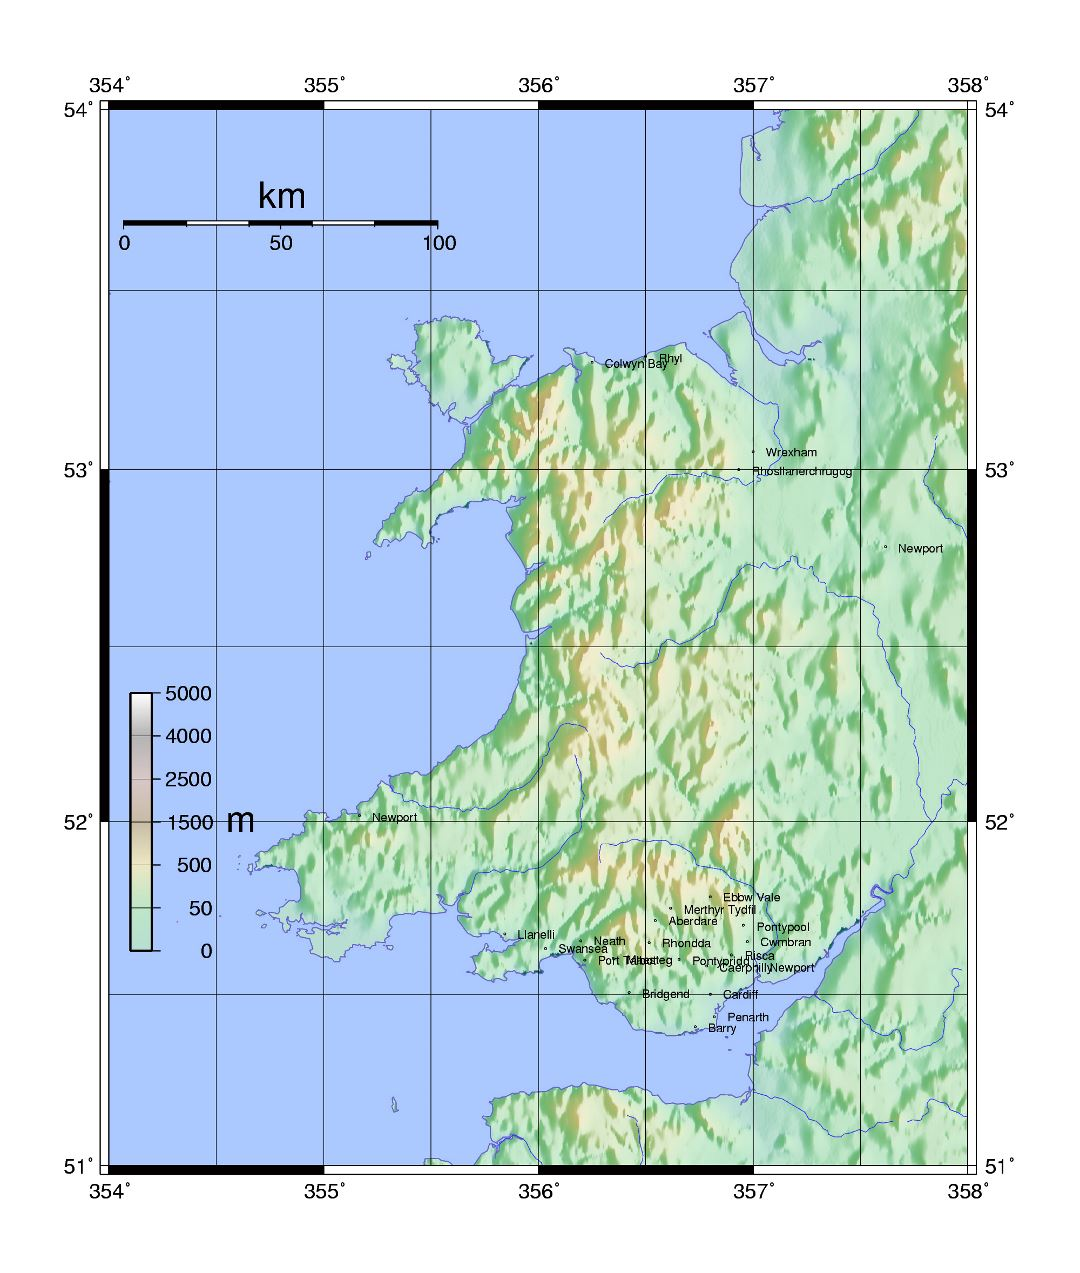 Large topographical map of Wales